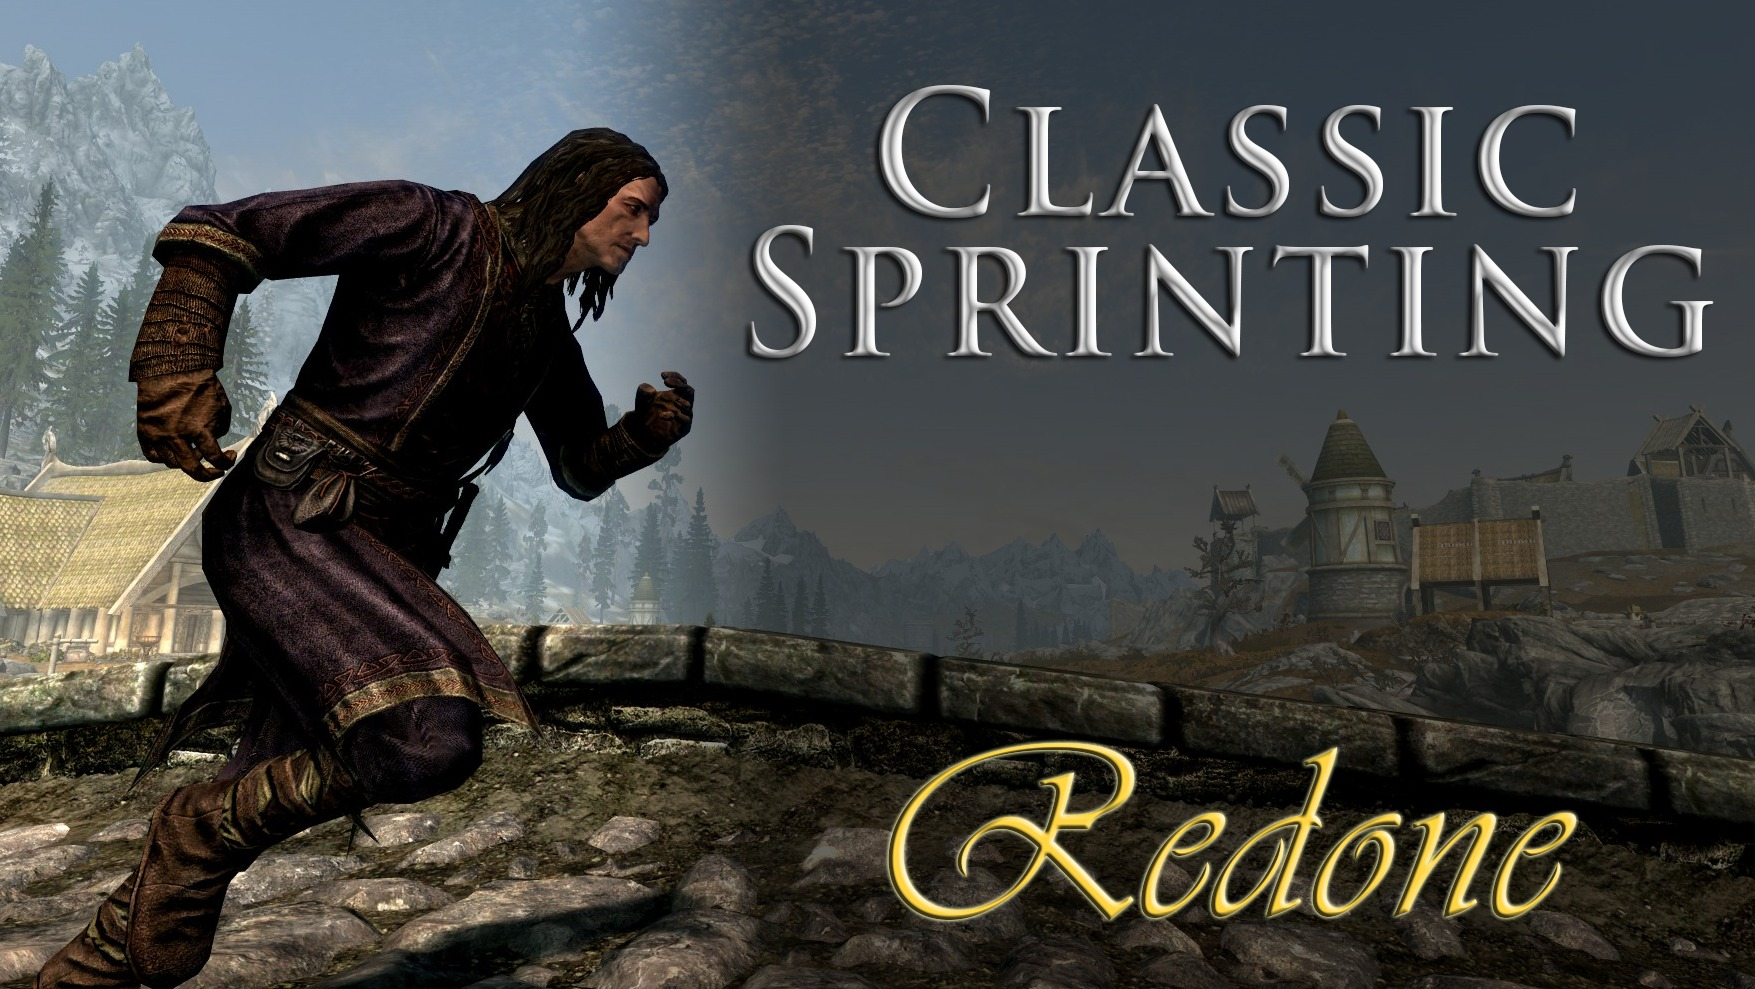 Classic Sprinting Redone (SKSE64) その他 - Skyrim Special Edition